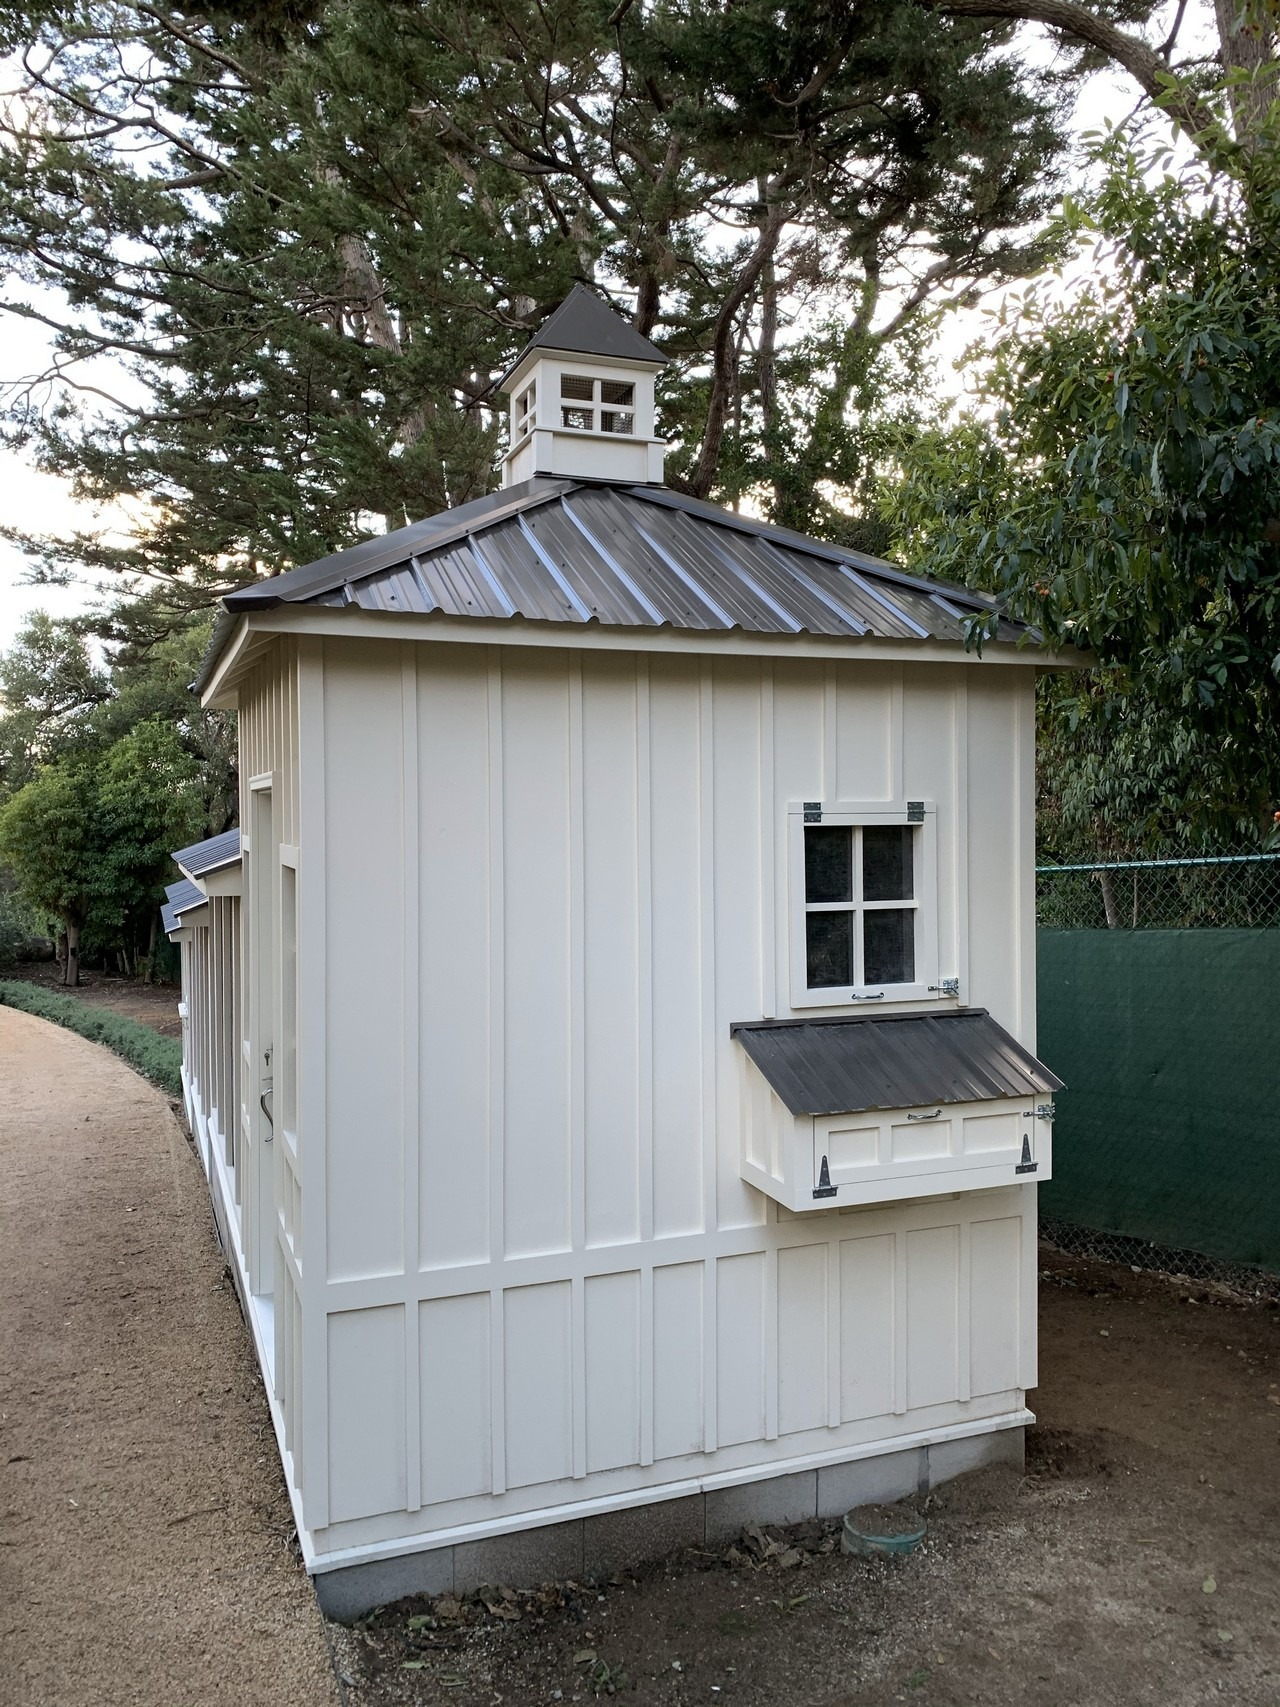 back of the shed-henhouse combo of a custom Craftsman chicken coop in Santa Barbara, CA